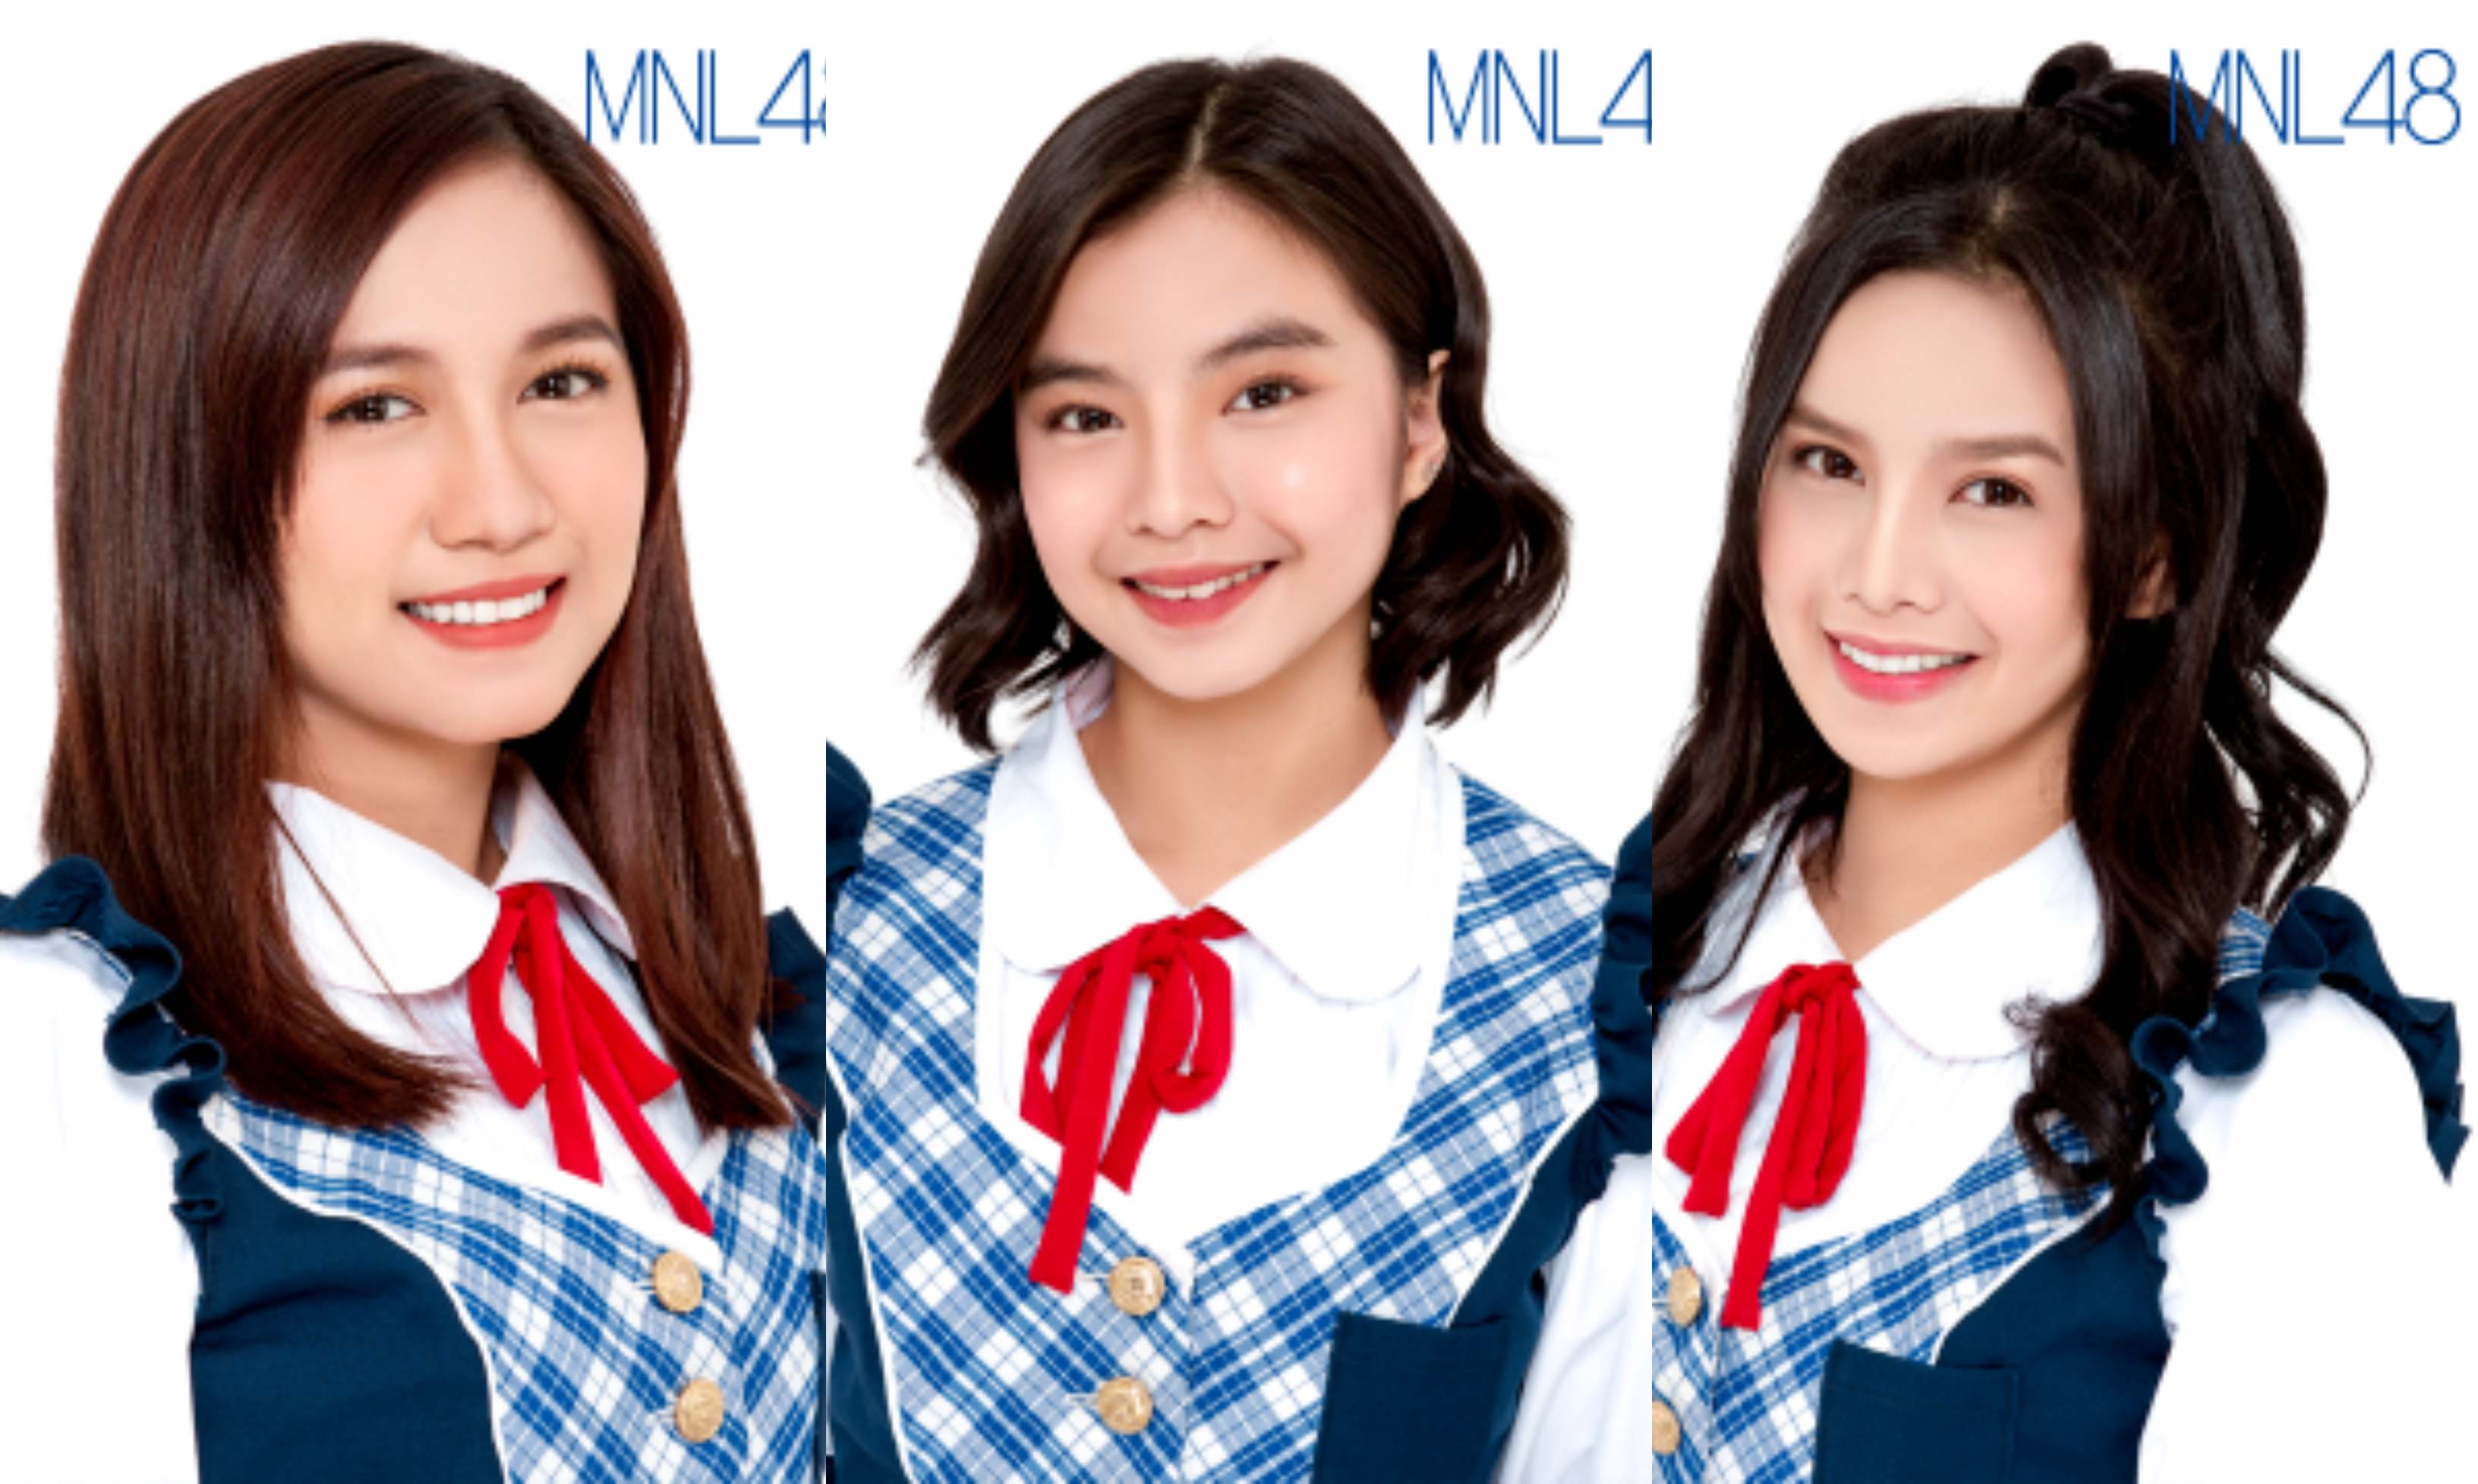 """MNL48 joins list of Asian artists in international benefit concert """"One Love Asia"""""""